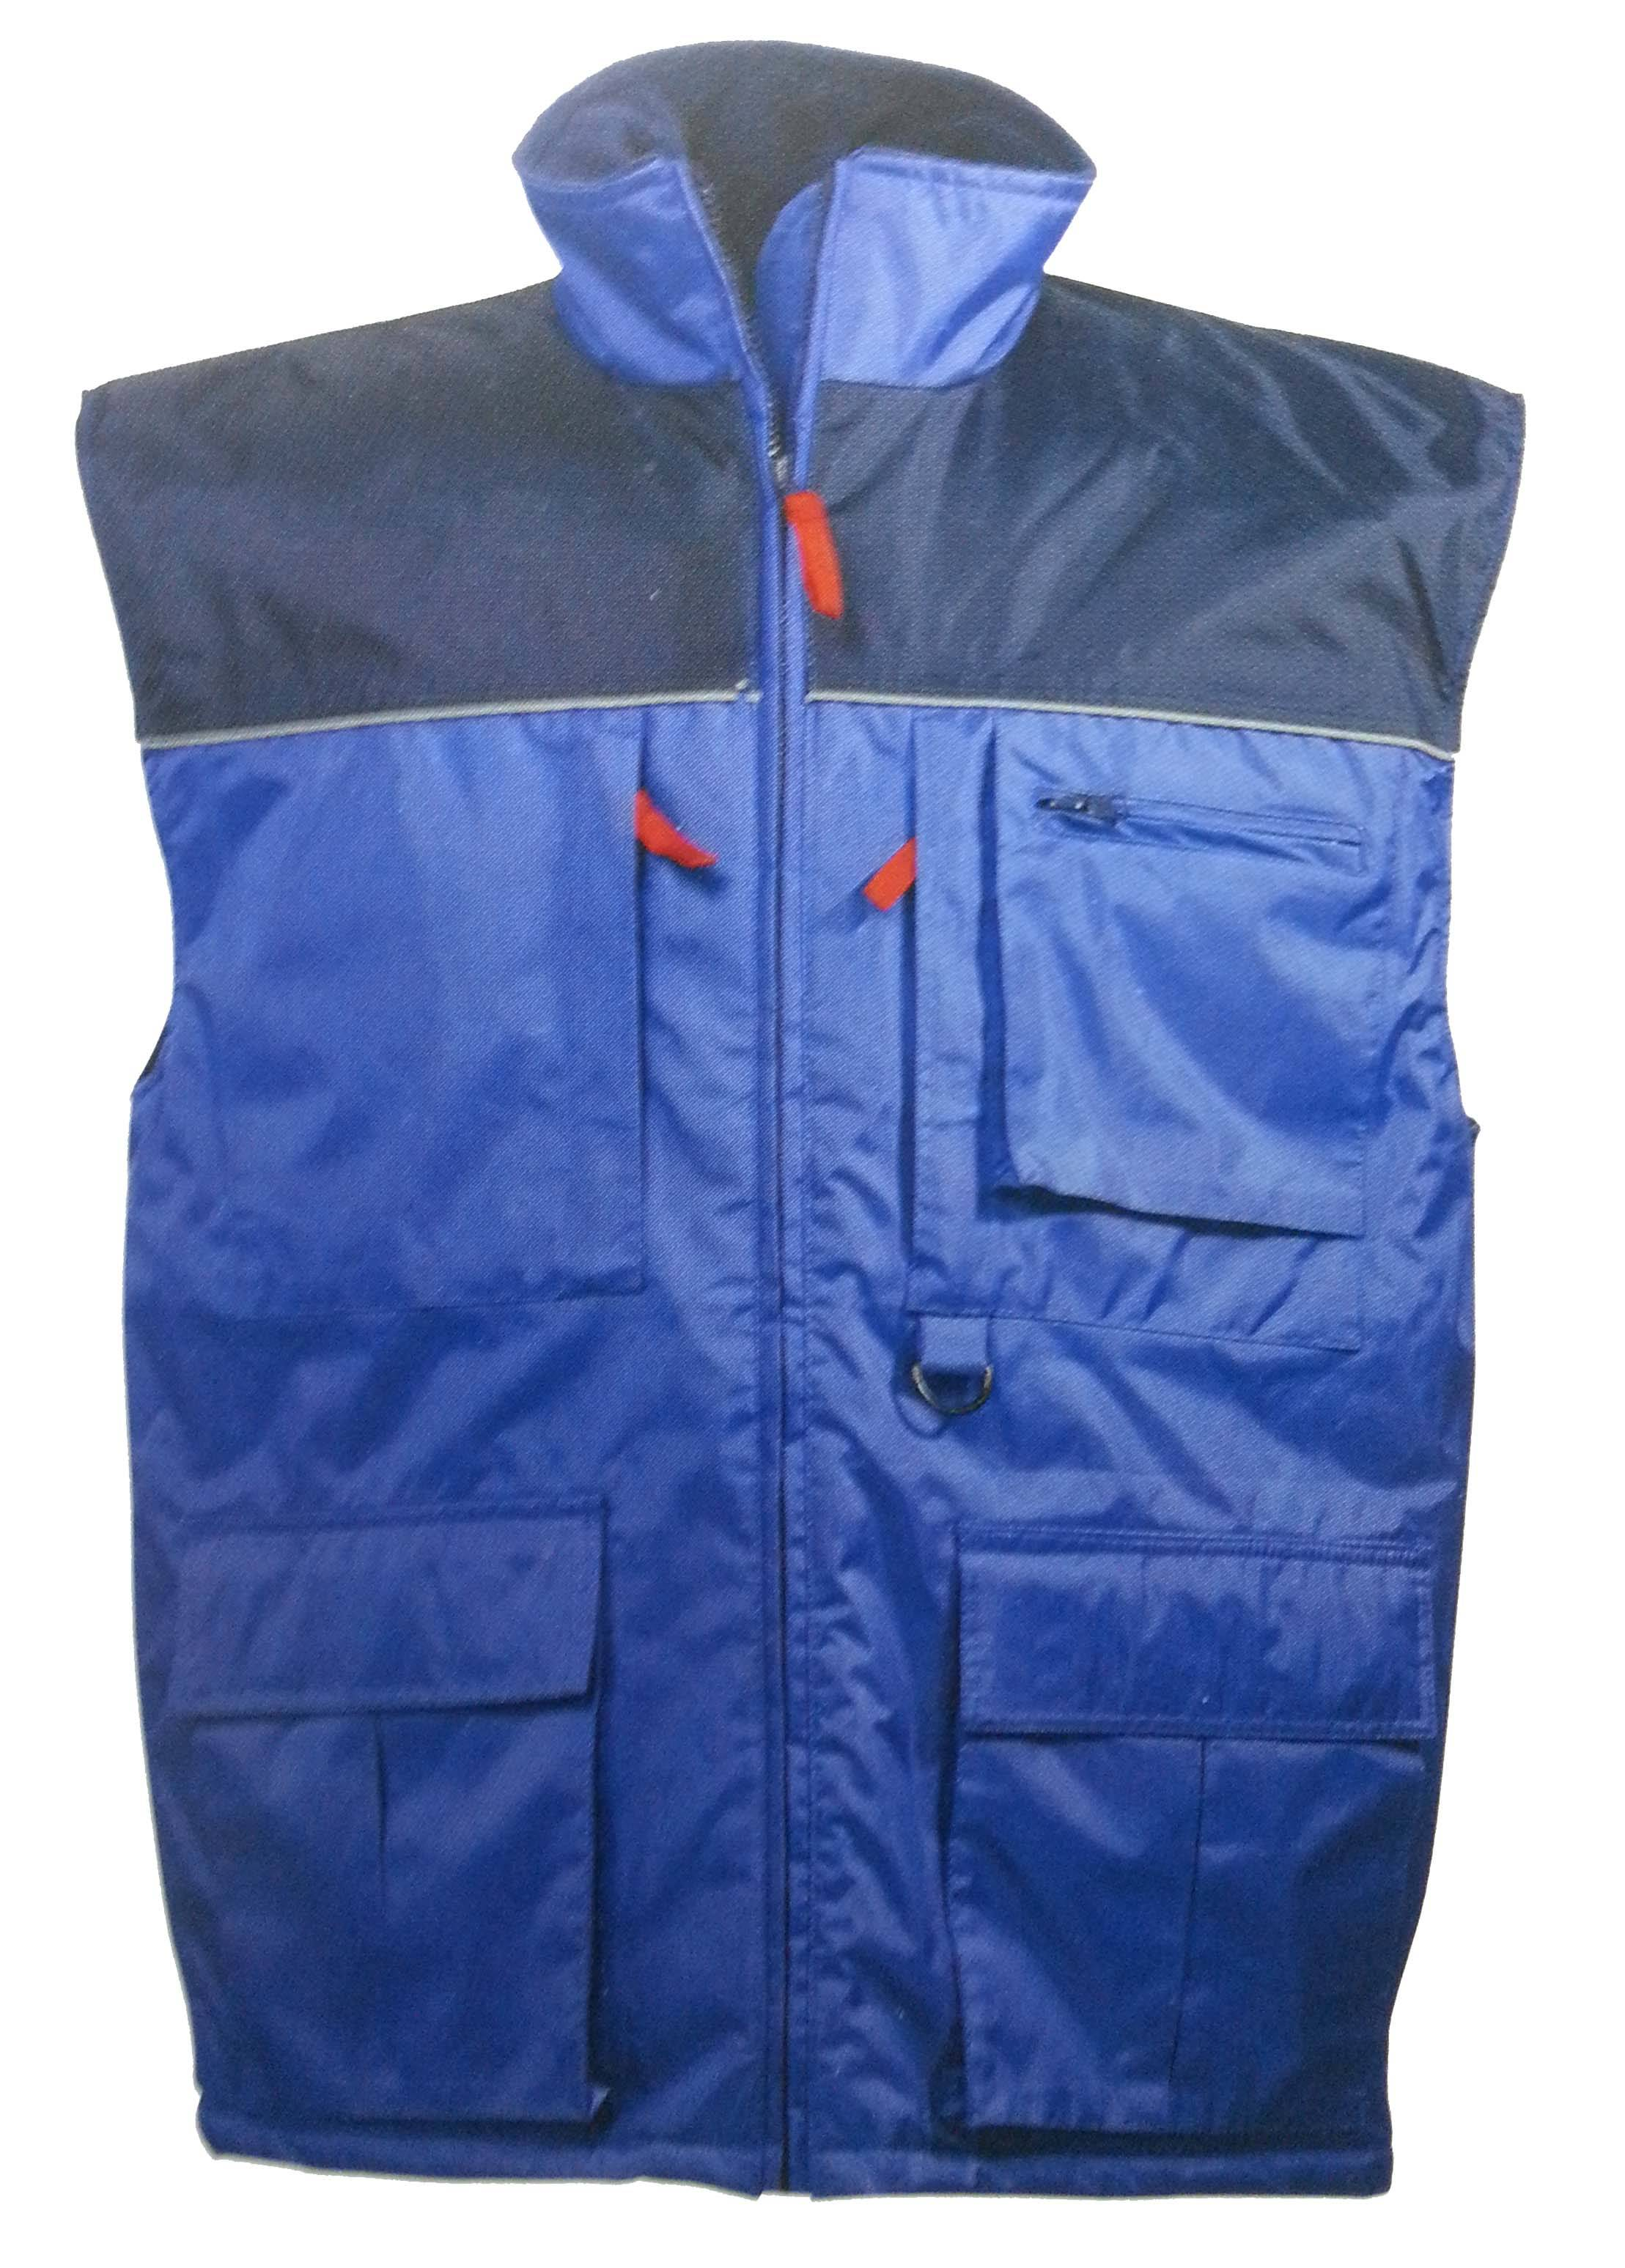 6401 work bodywarmer